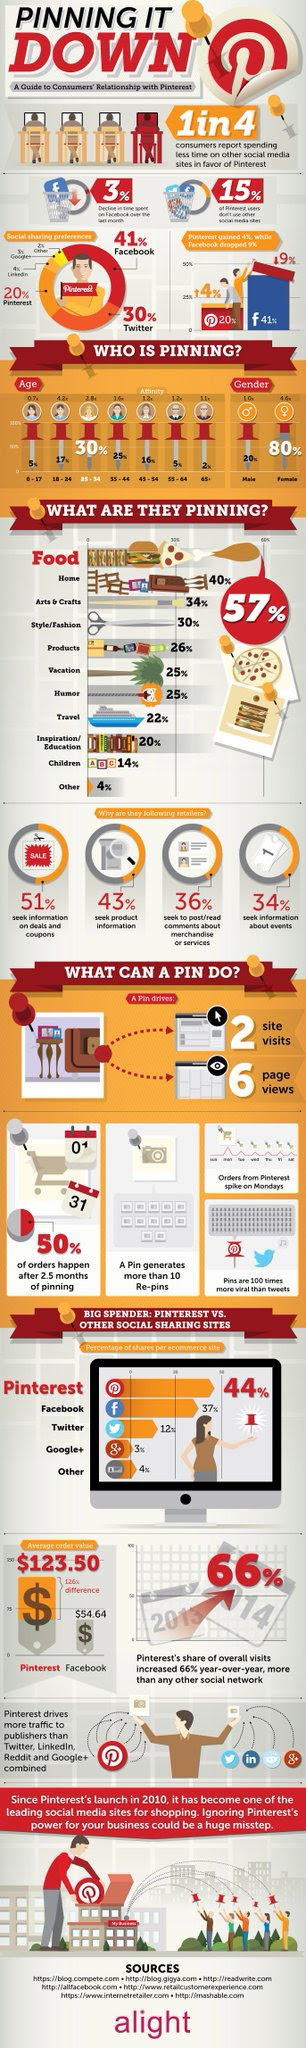 Consumer's Guide to Pinterest!